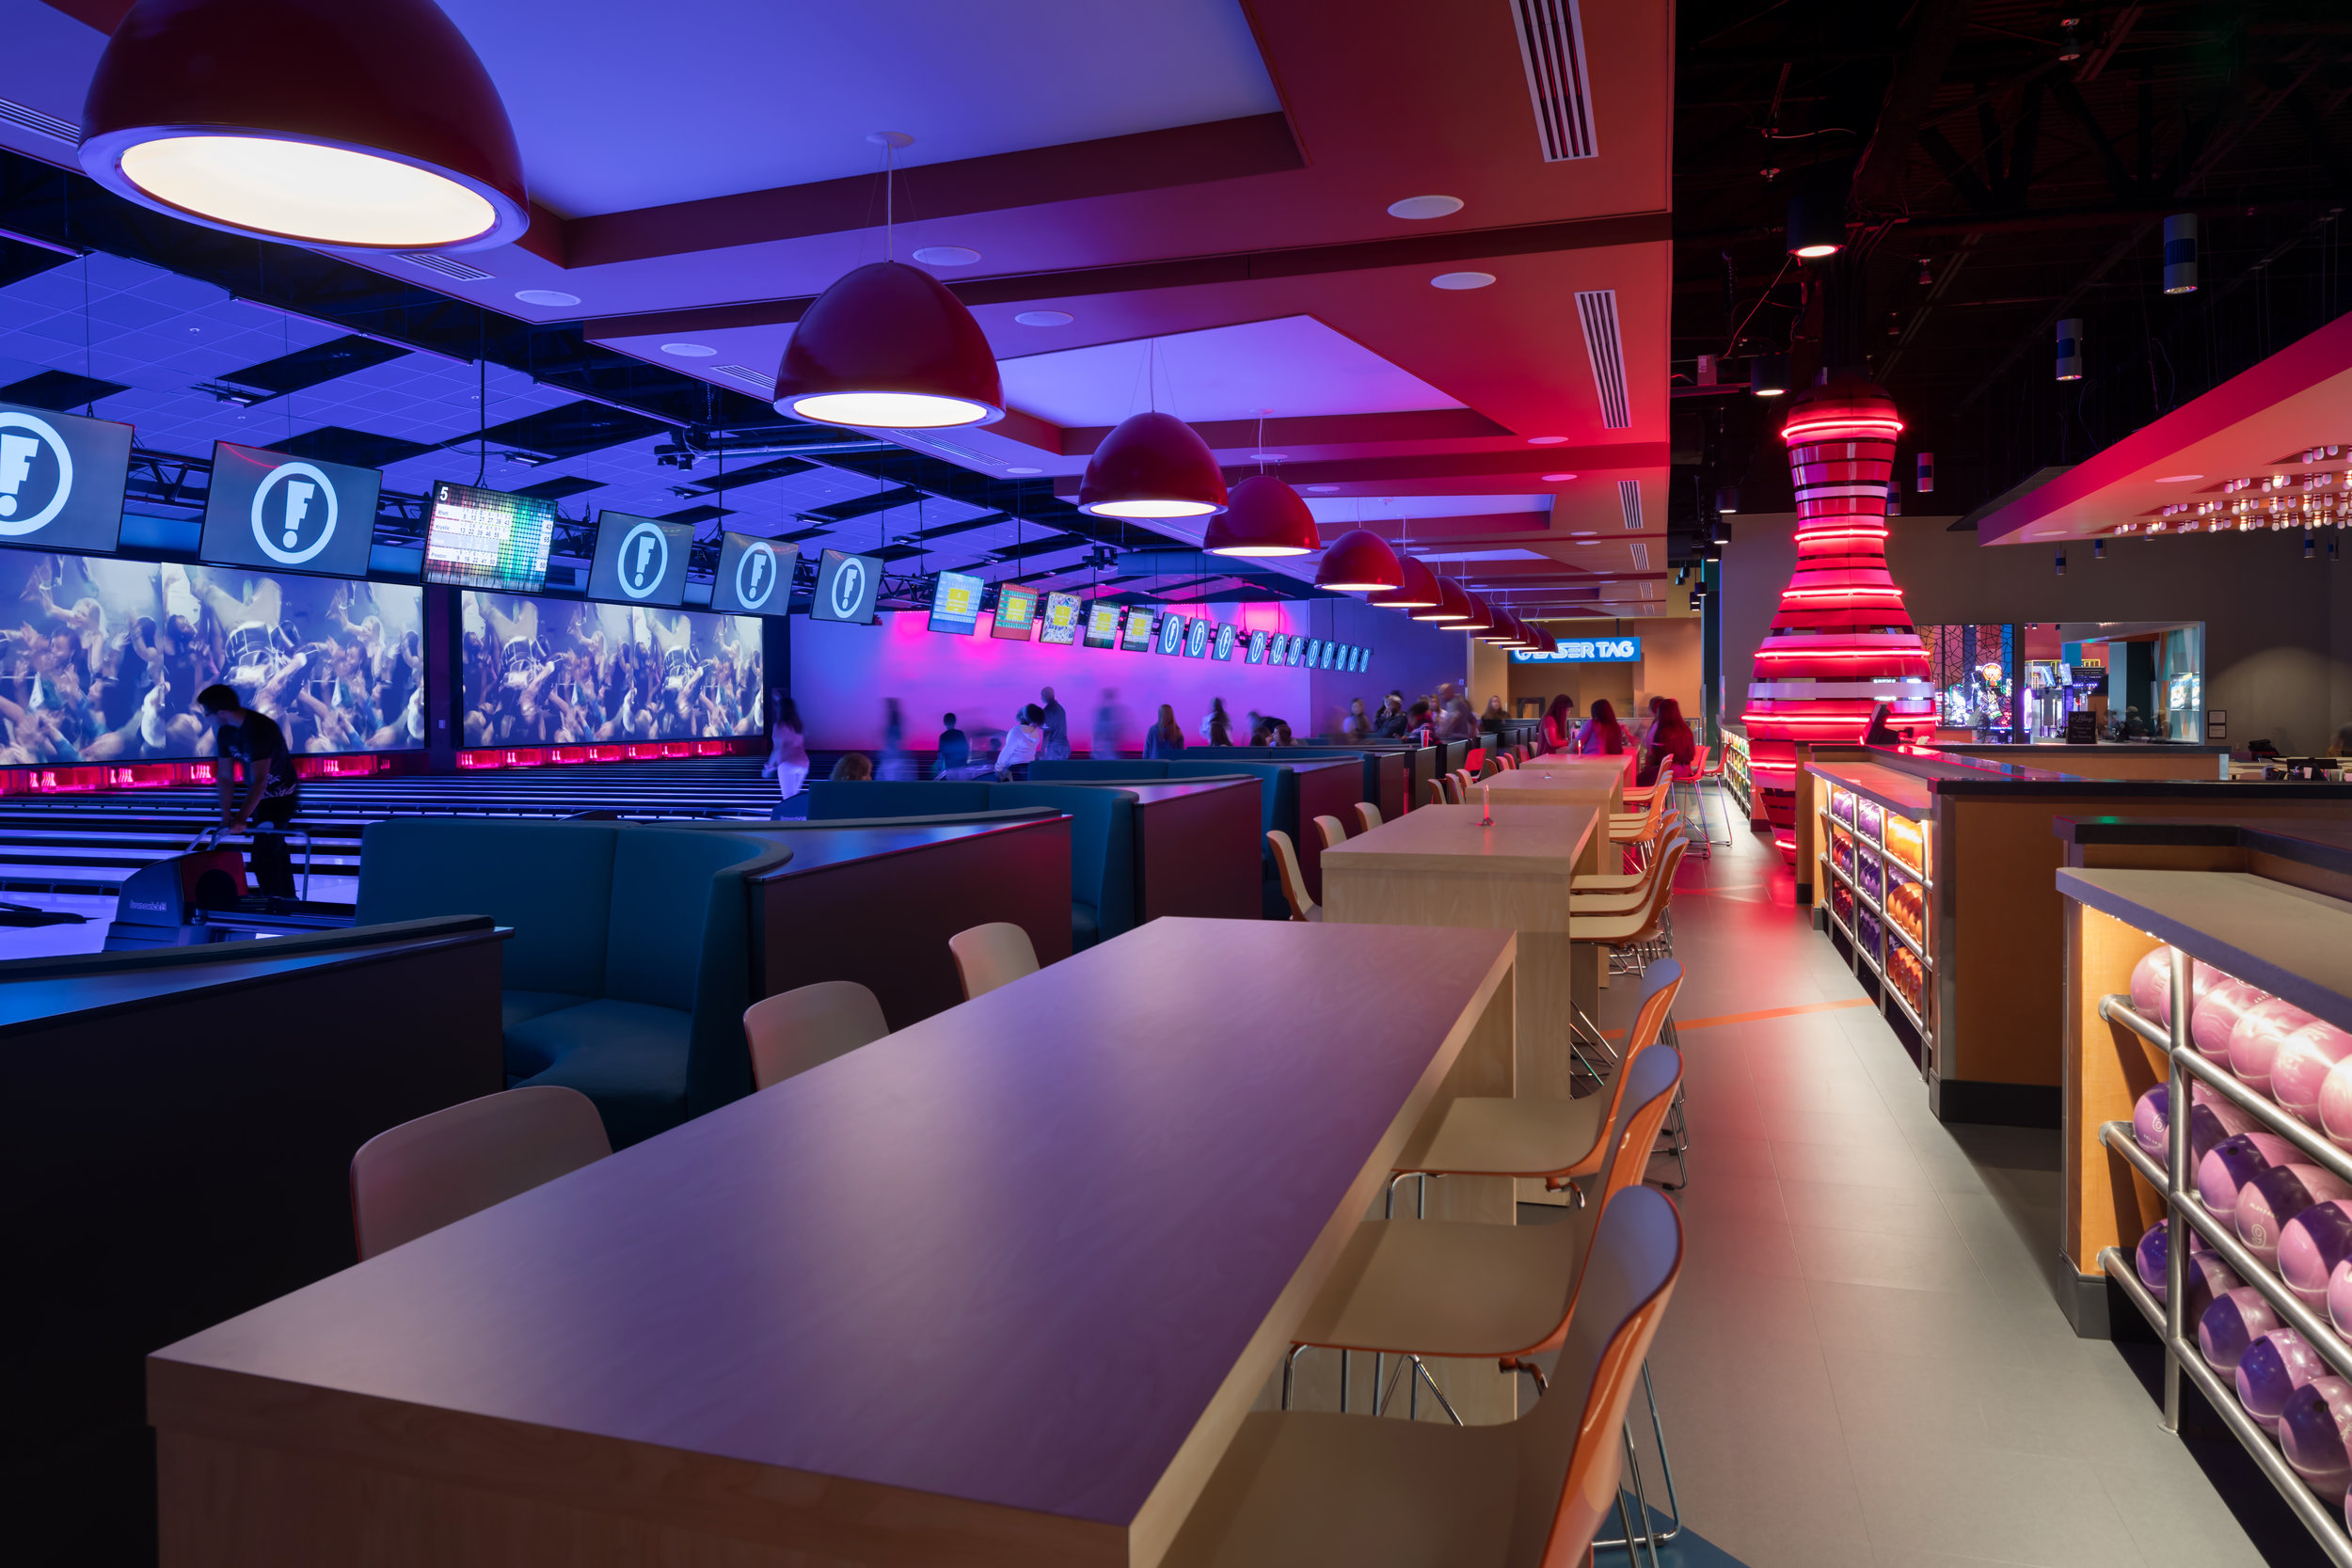 ADW-Entertainment-Frankie's-Fun-Park-Huntersville-NC-Interior-Bowling Table Seating 01.jpg